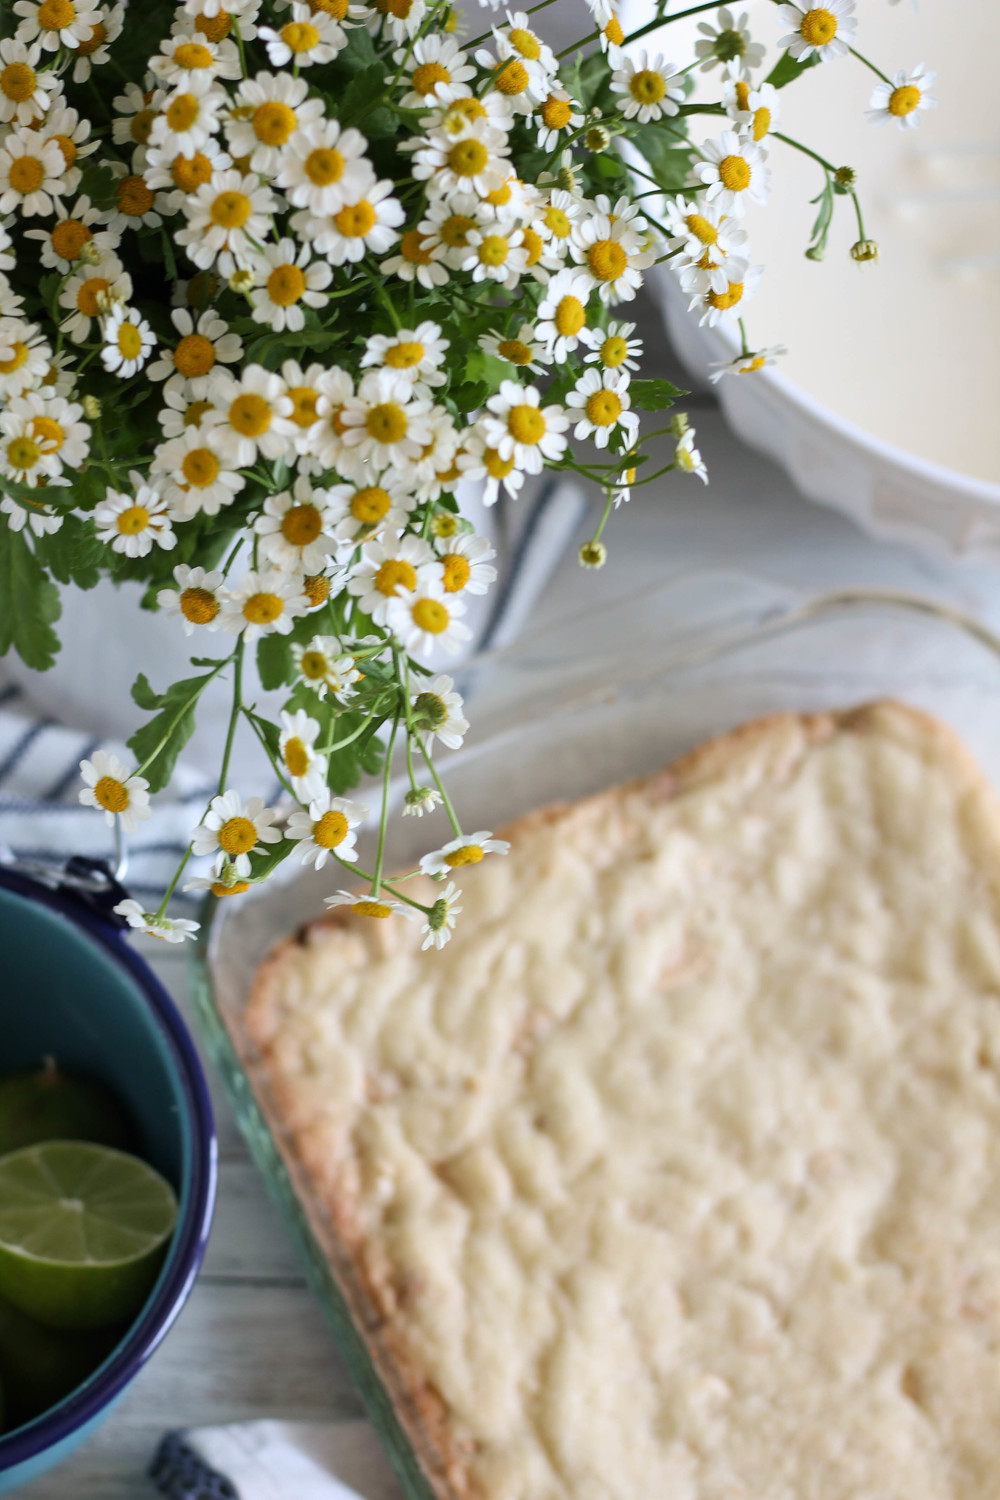 White Chocolate Macadamia Nut Lime Bars {Pedantic Foodie}